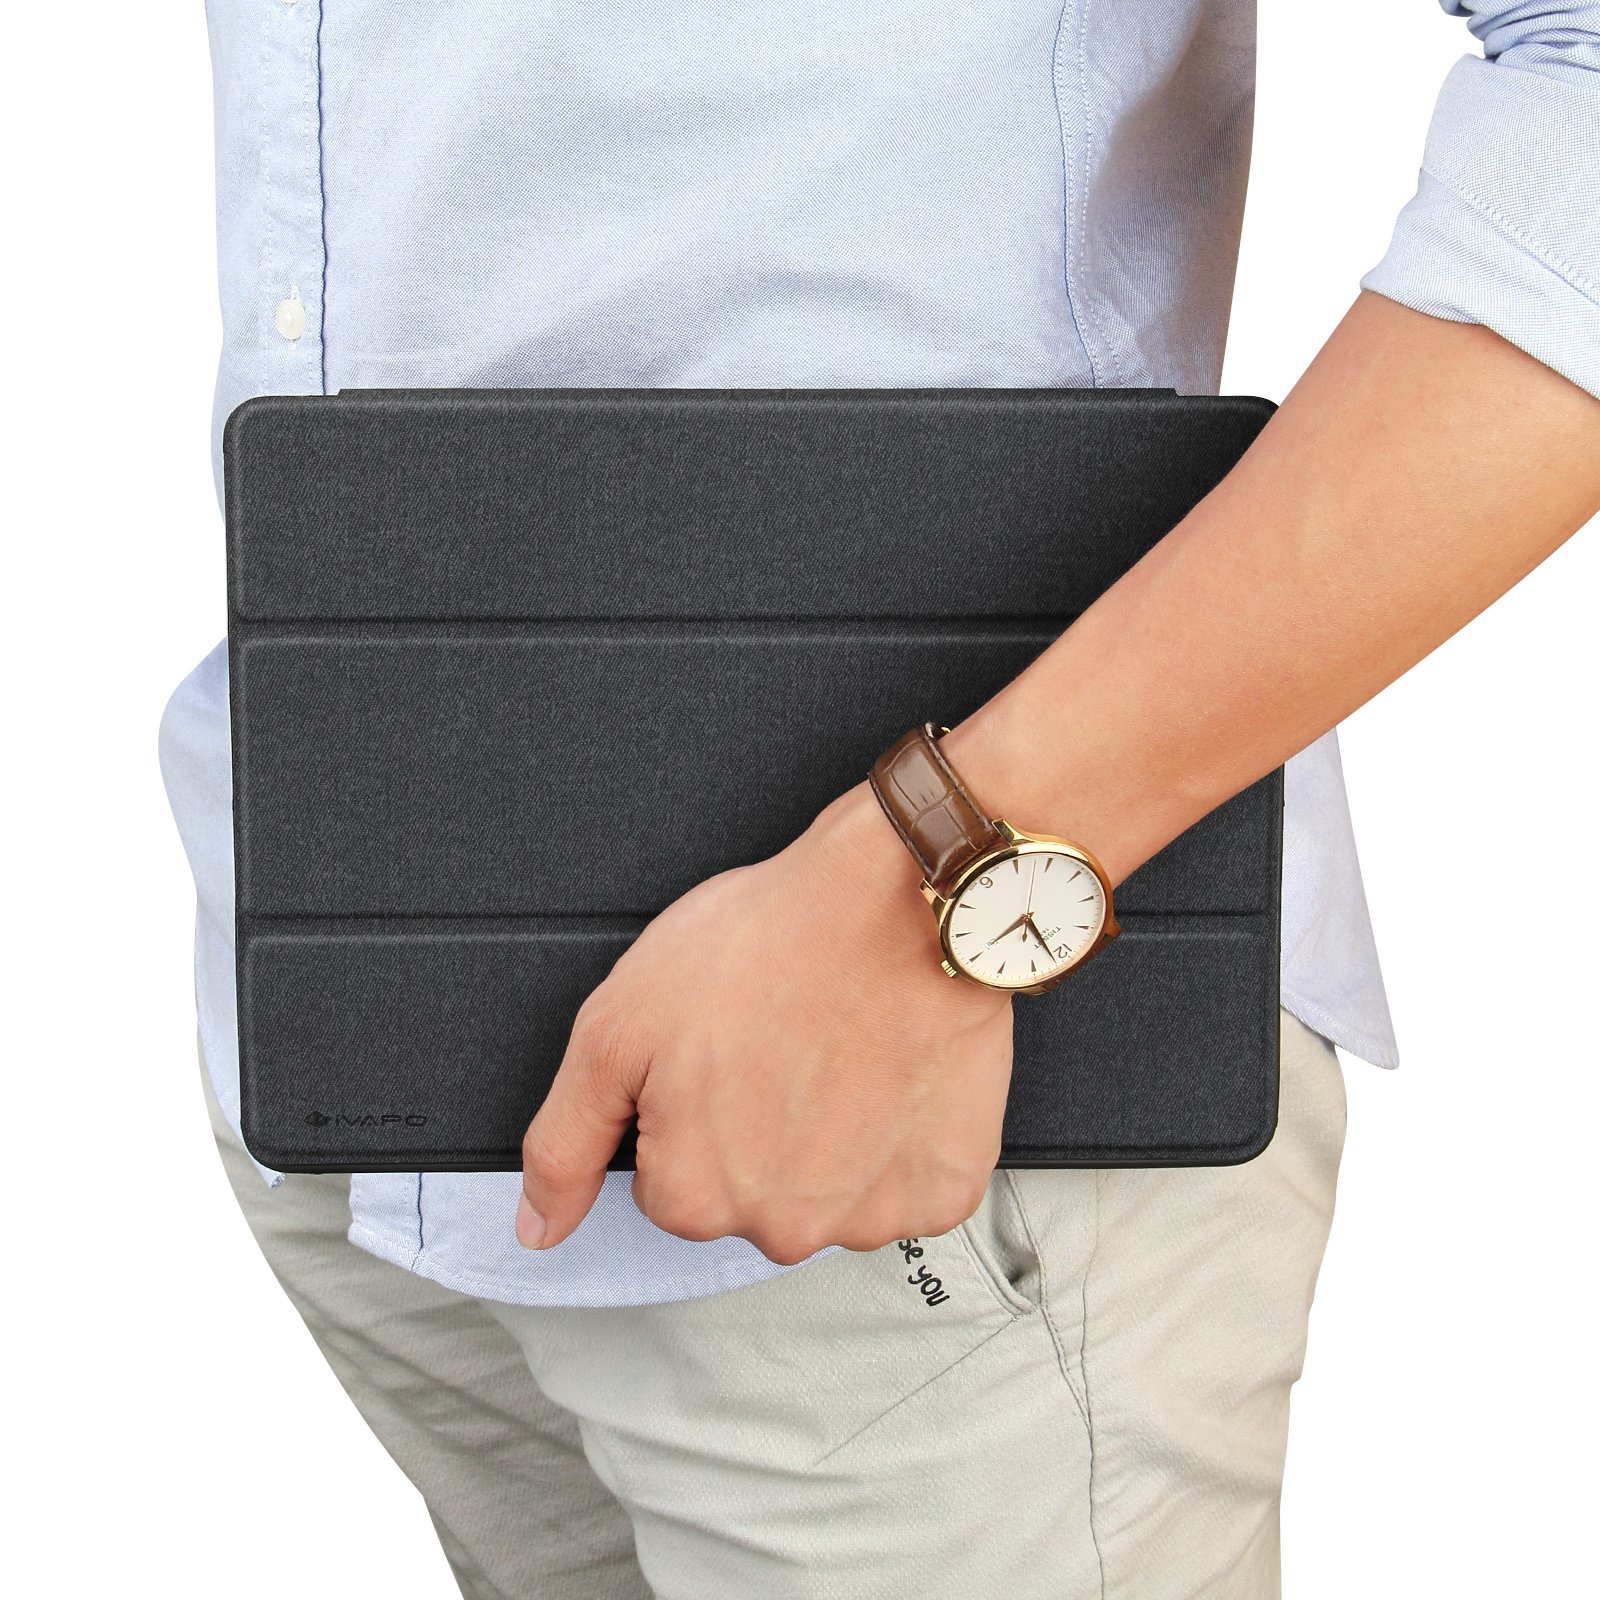 iVAPO iPad Pro 10.5 Case Pencil Holder Auto Sleep Wake Function Typing Viewing Tri-fold Stand PU Leather Smart Cover for iPad Pro 10.5 inch 2017 Black Denim Leather by iVAPO (Image #10)